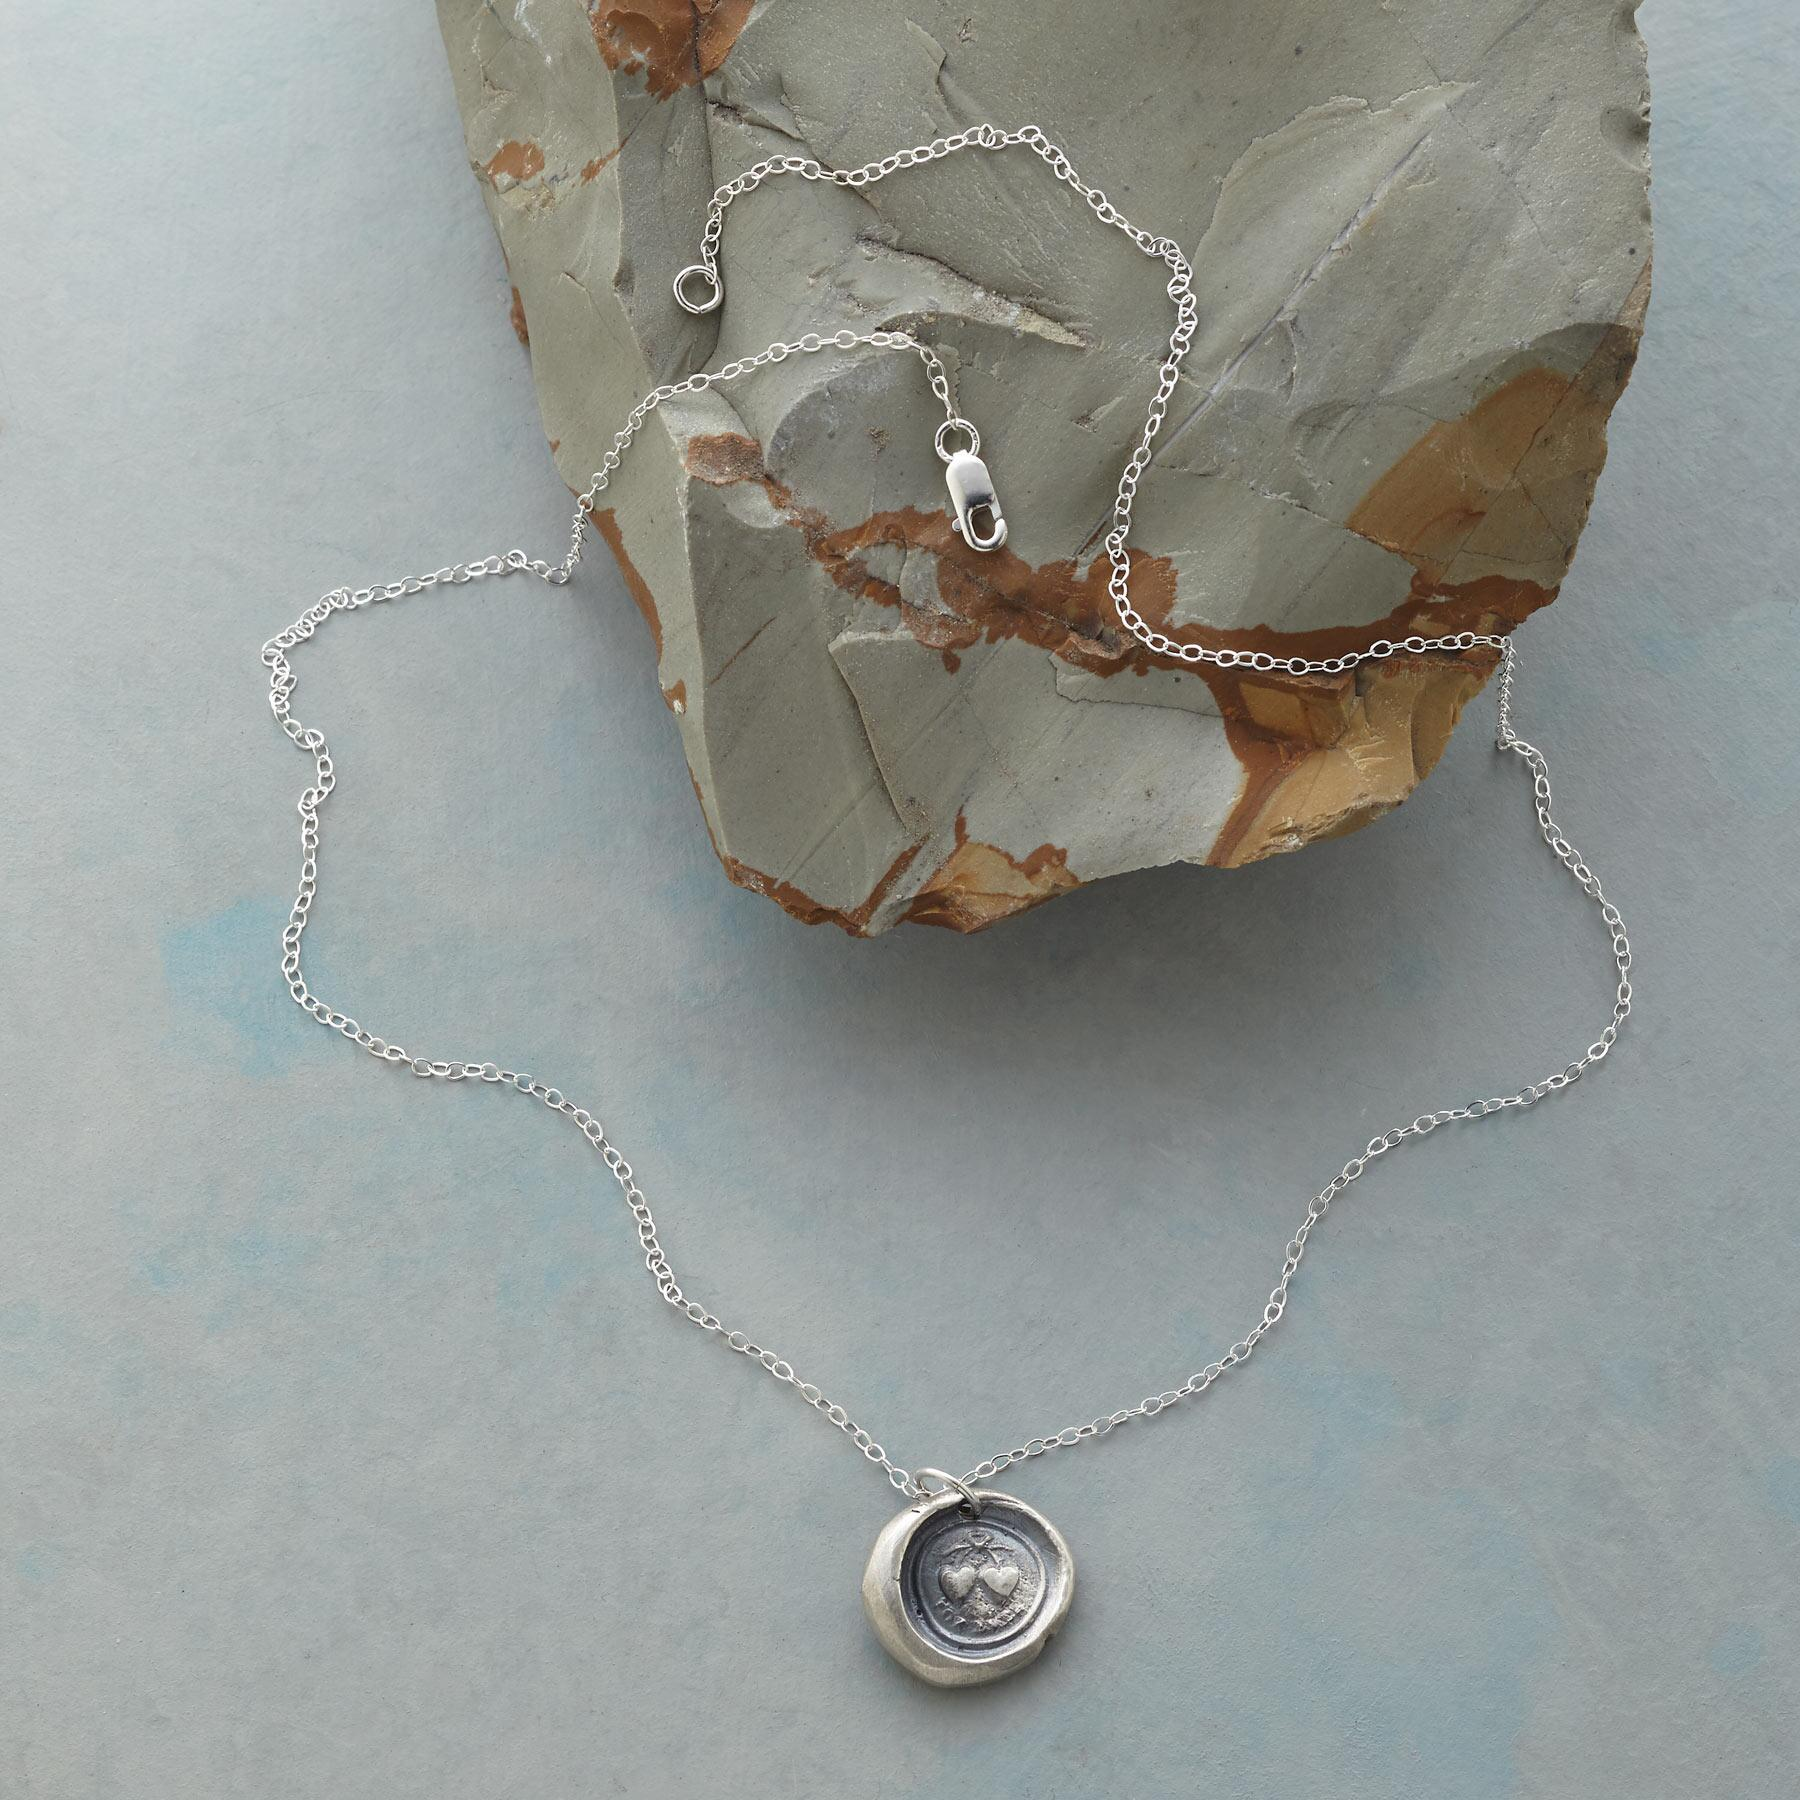 SEALED WITH LOVE NECKLACE: View 2